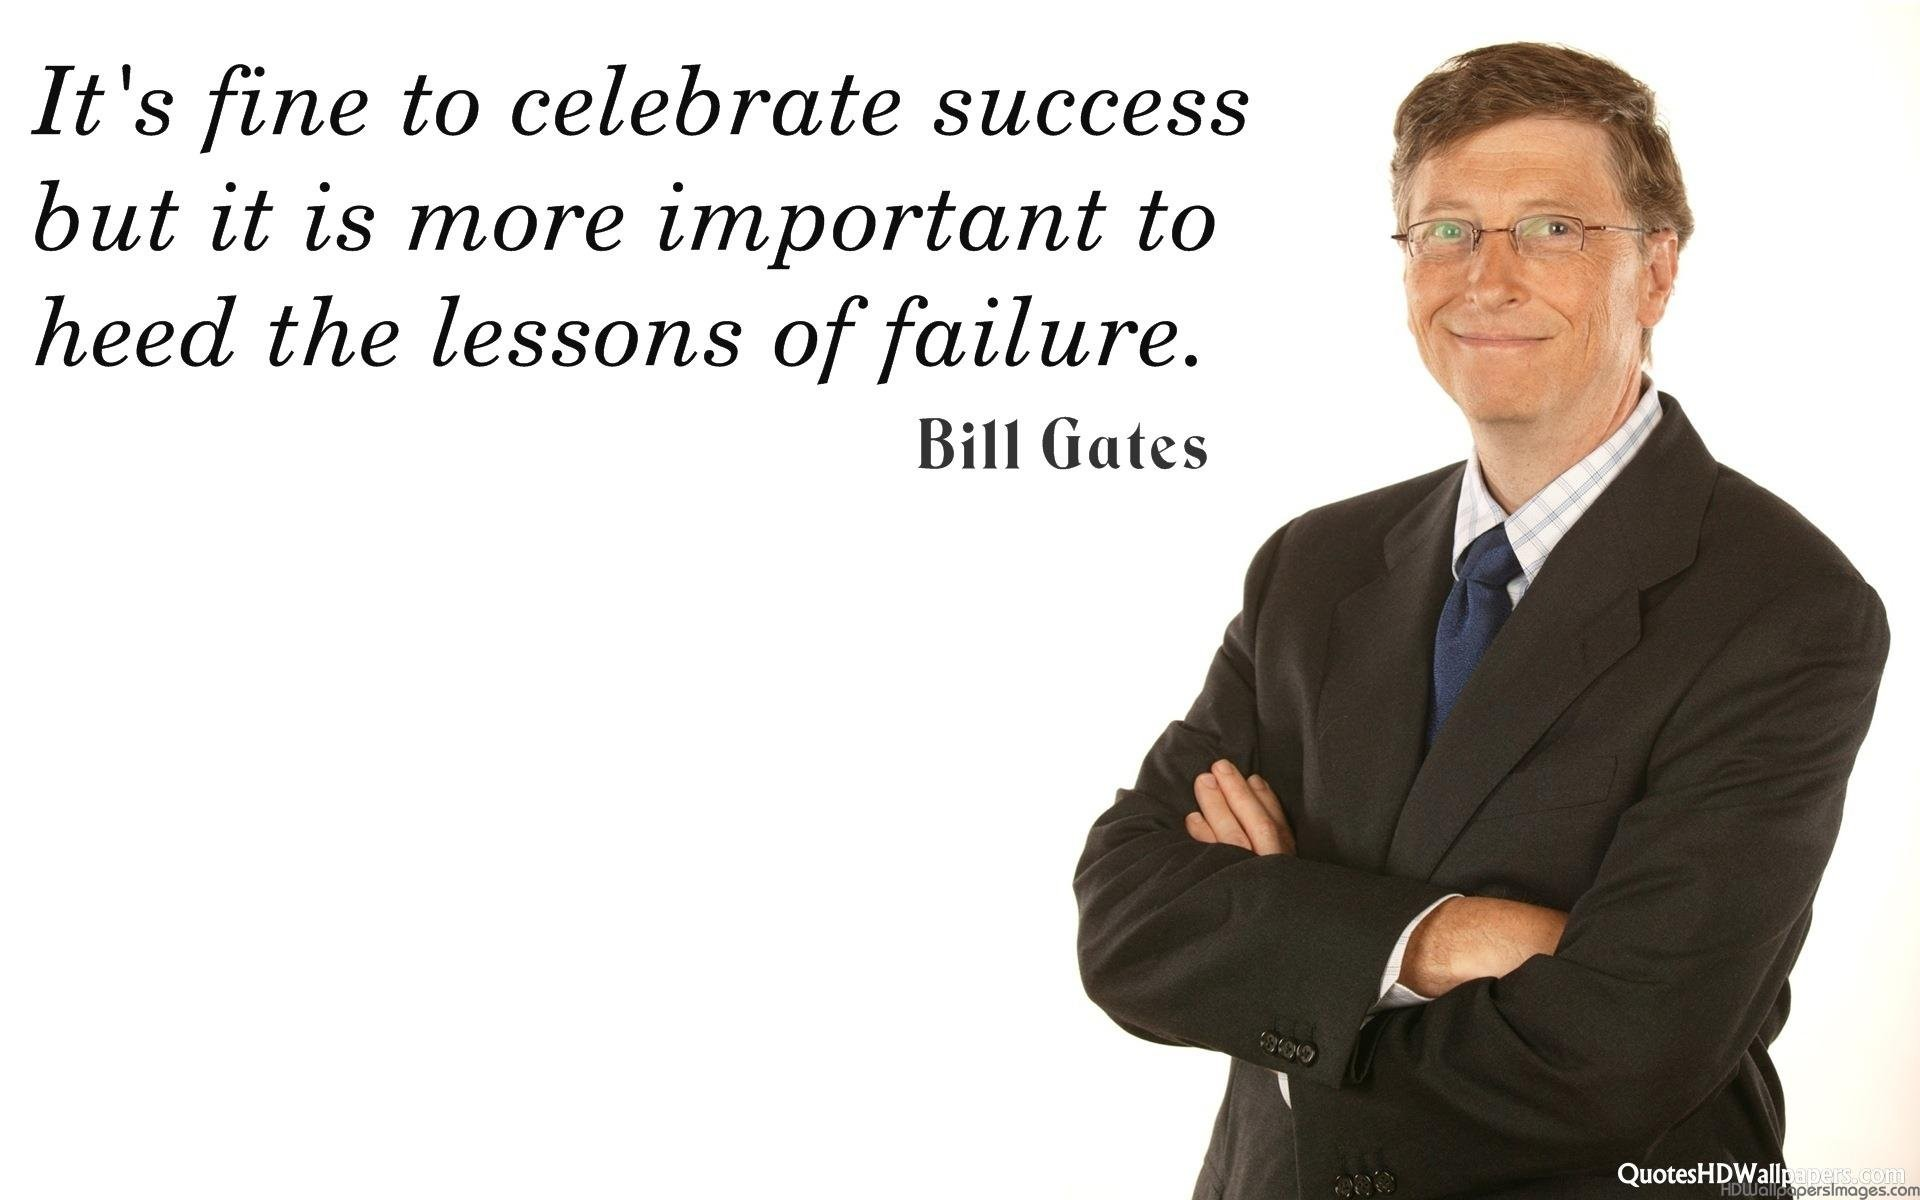 the life and success story of william henry gates iii Early life information william henry gates iii william henry gates iii (bill gates) was born in seattle, washington on october 28th, 1955 in a swedish hospital his father, william h gates ii, is a seattle attorney.